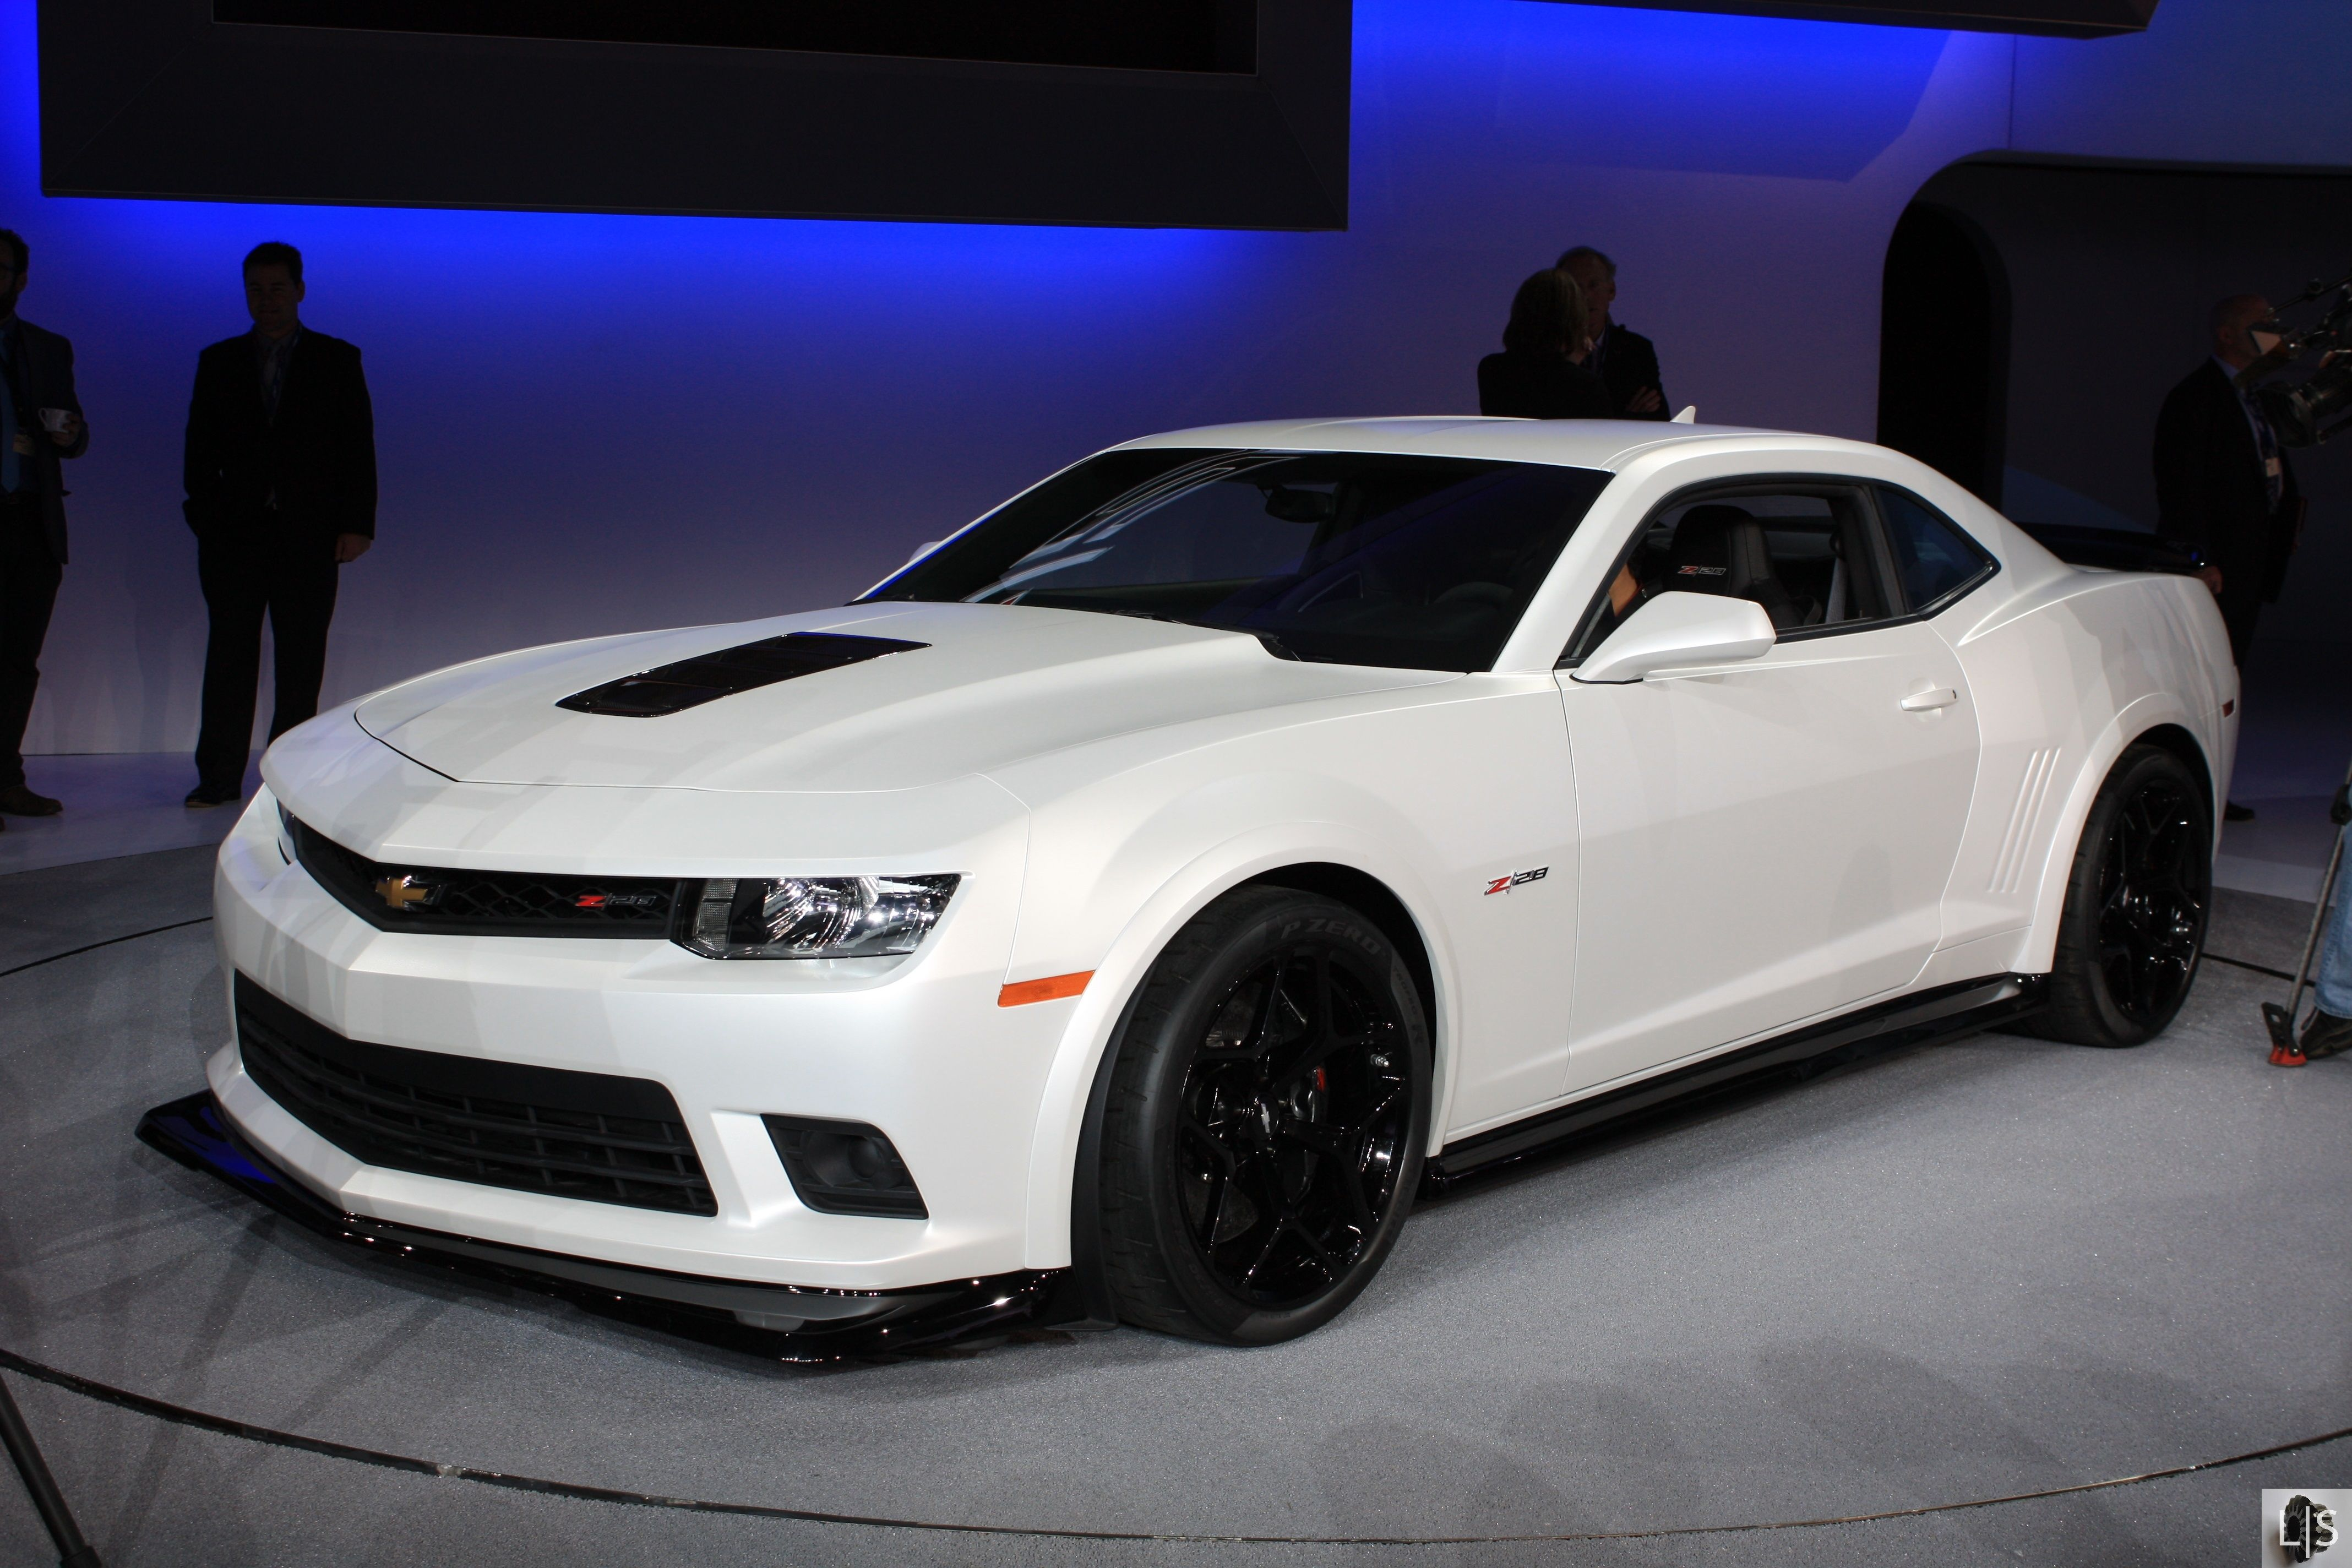 2015 Chevy Camaro Vs 2015 Ford Mustang Vs 2015 Dodge